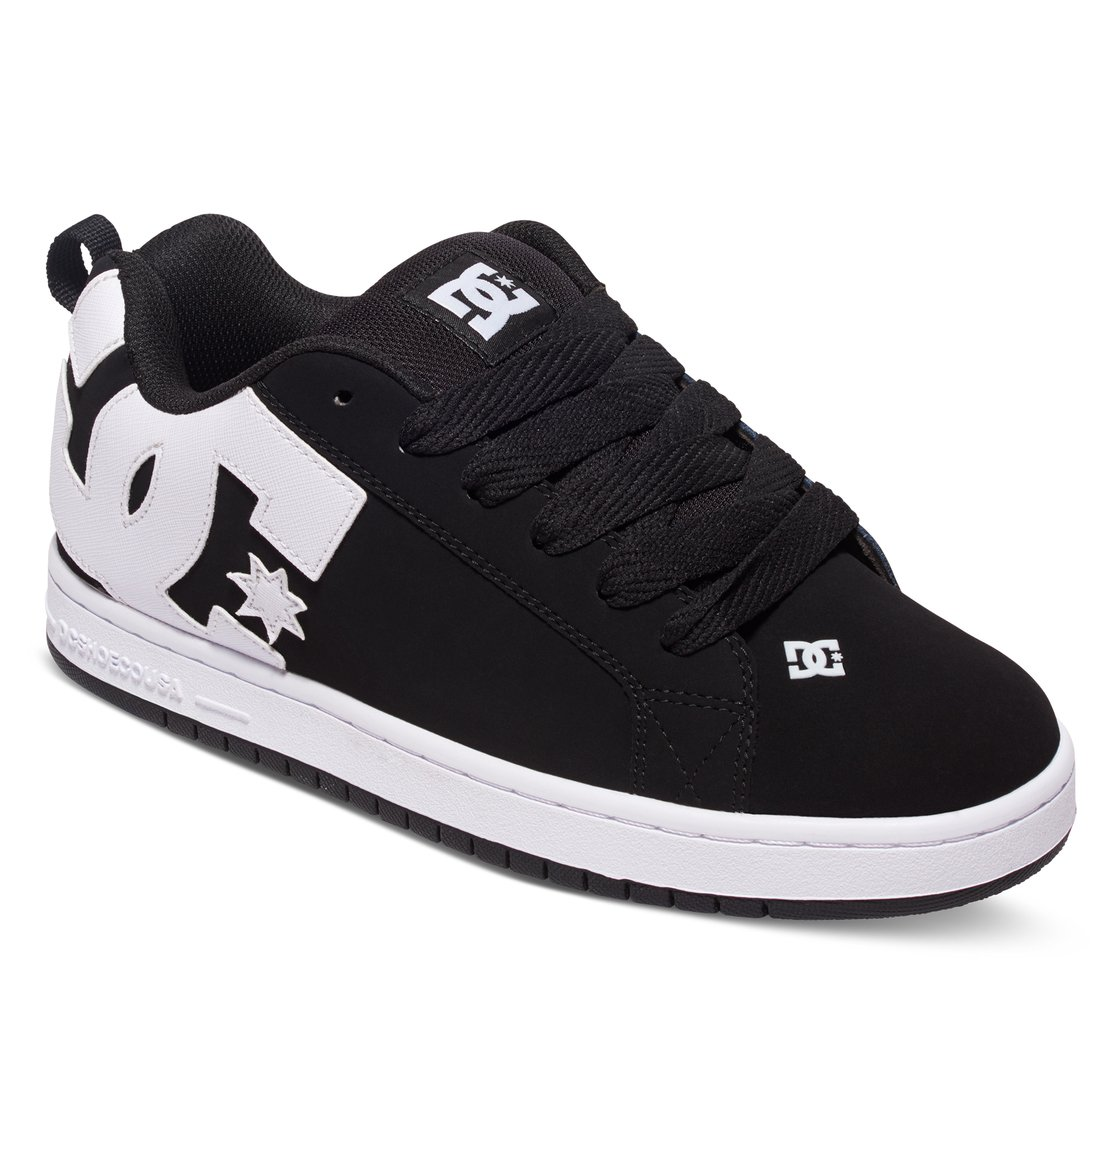 DC Shoes is an American company that specializes in footwear for action sports, including skateboarding and deutschviral.ml company also manufactures apparel, bags, accessories, hats, shirts, and posters.